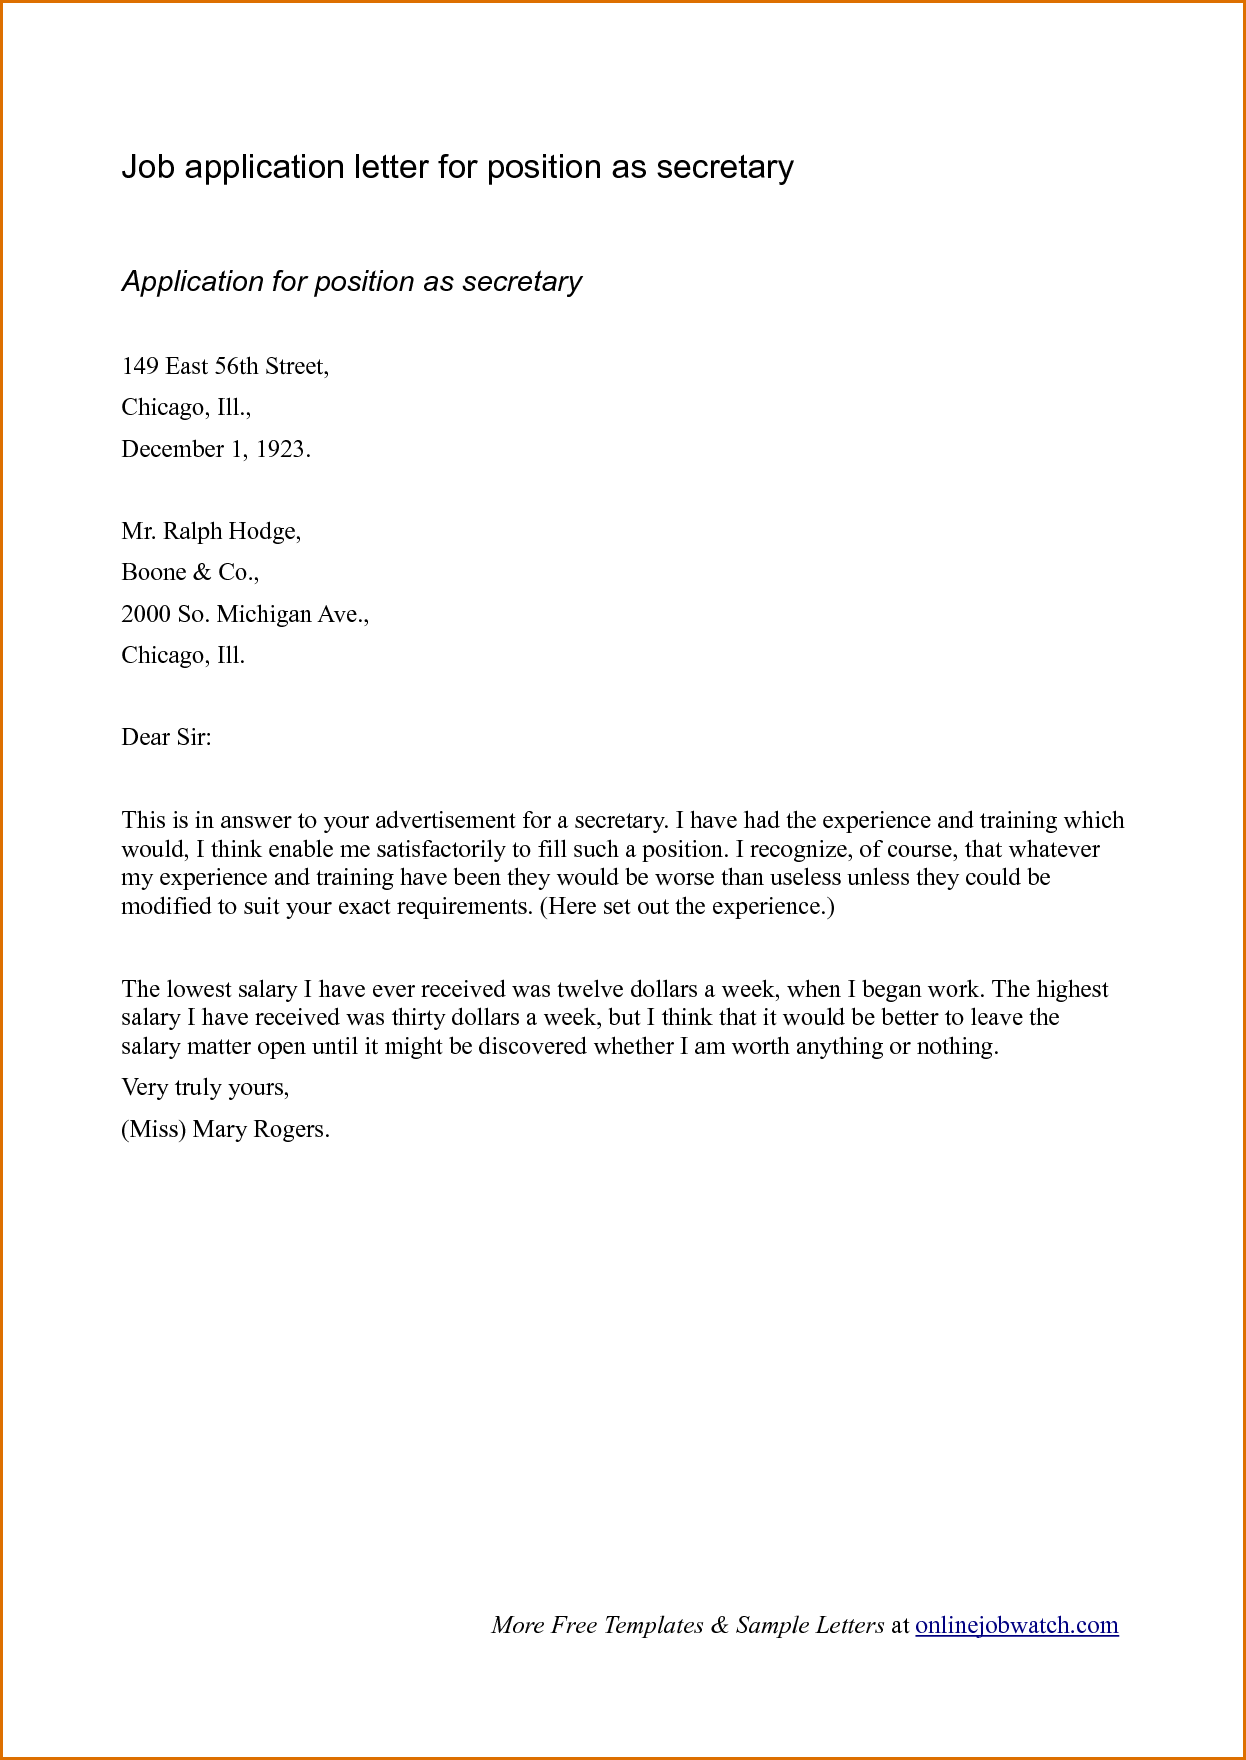 Sample cover letter format for job application for What is in a cover letter for a job application